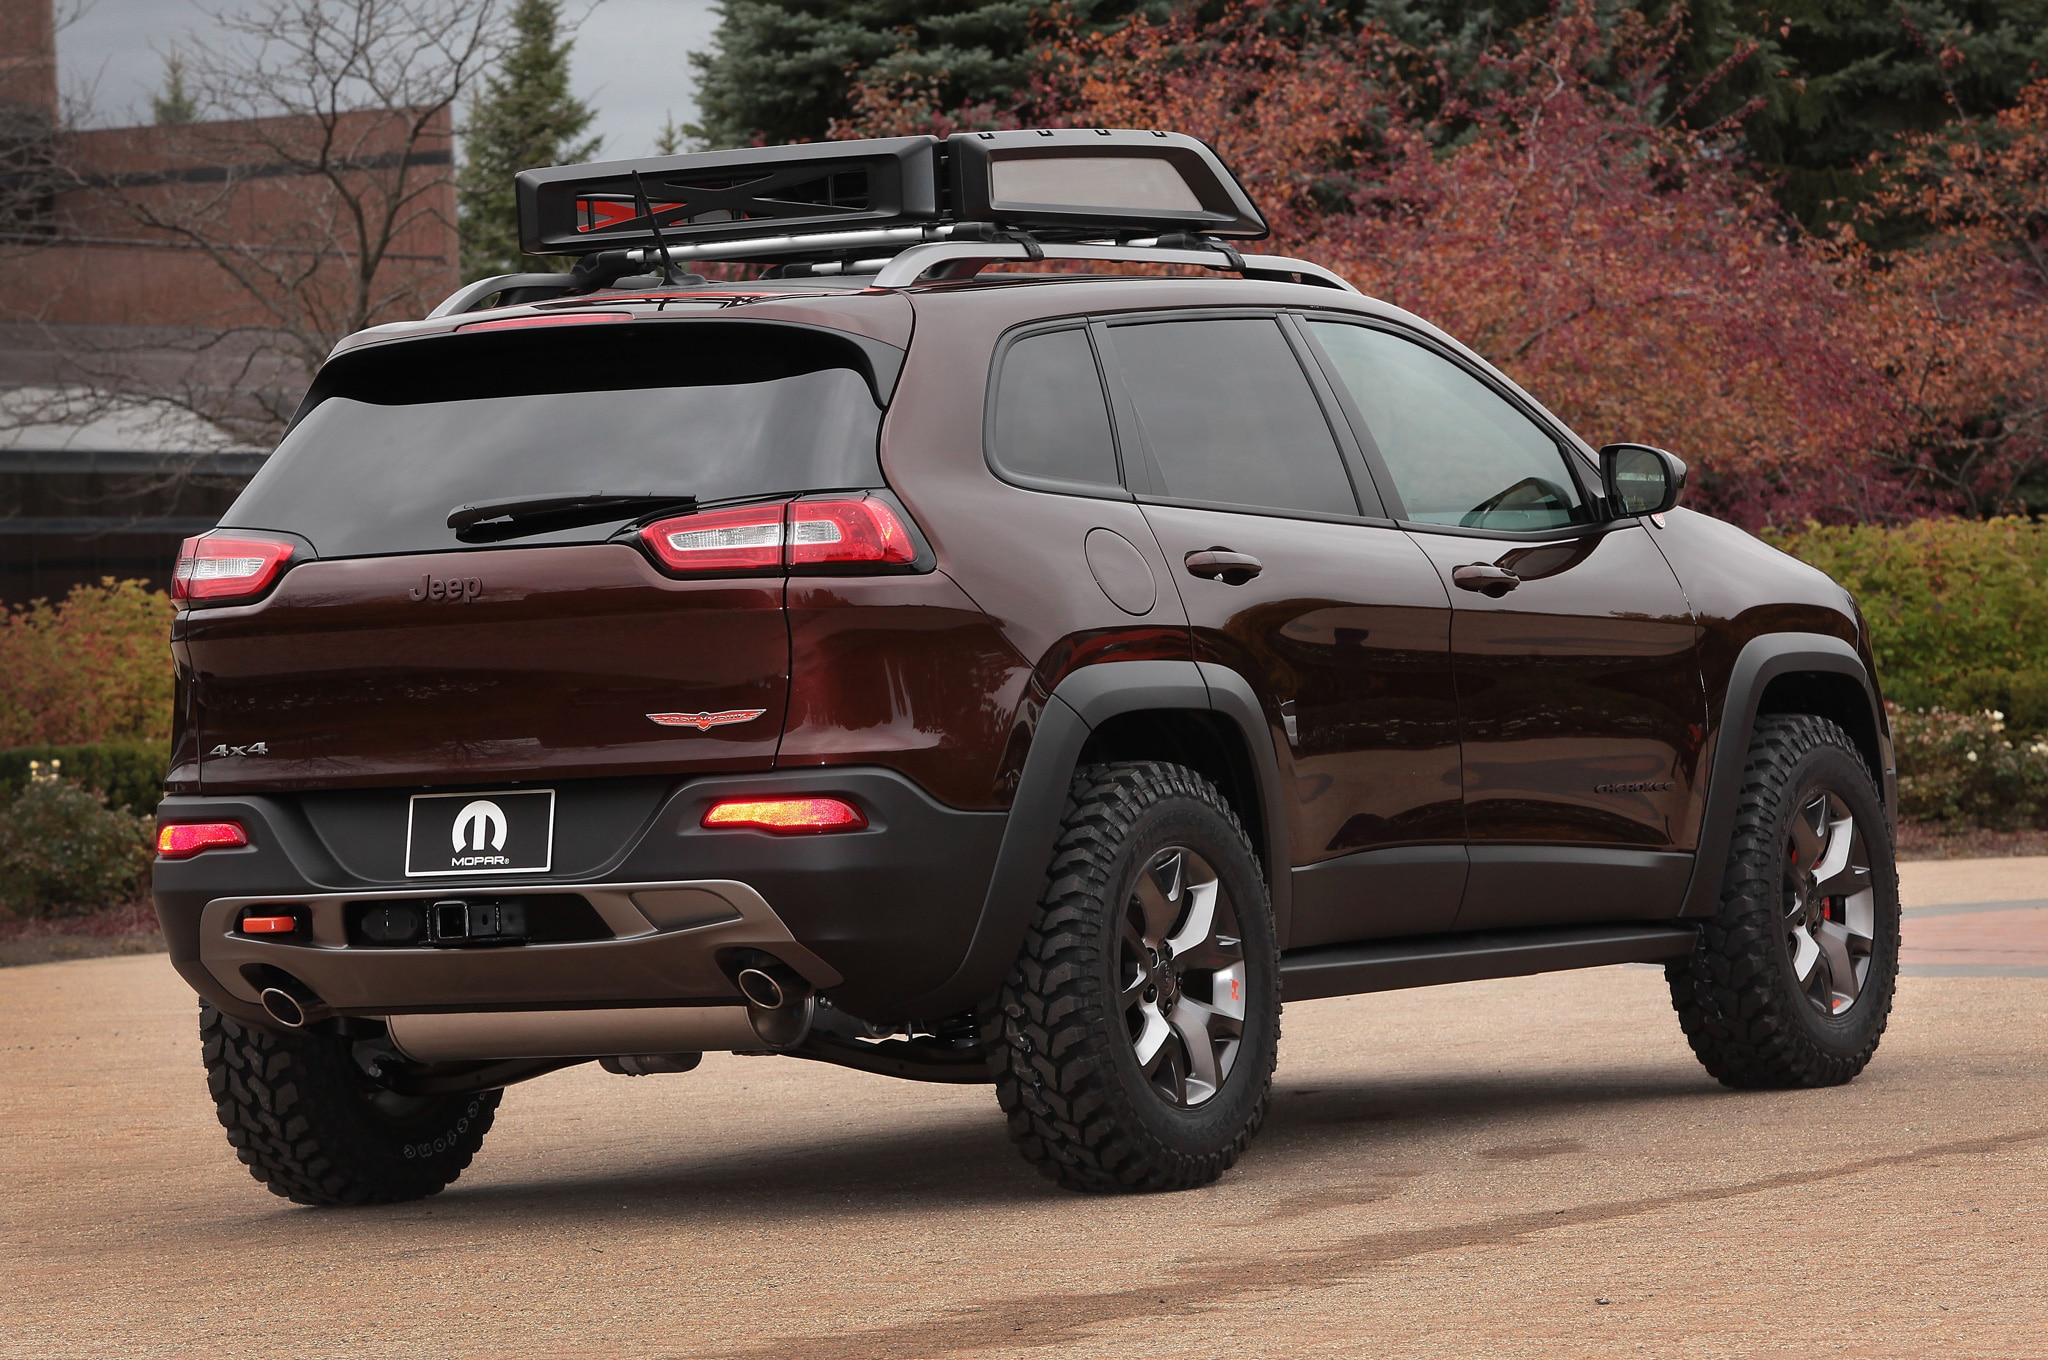 chrysler unveils 2014 jeep cherokee ram sun chaser sema. Black Bedroom Furniture Sets. Home Design Ideas